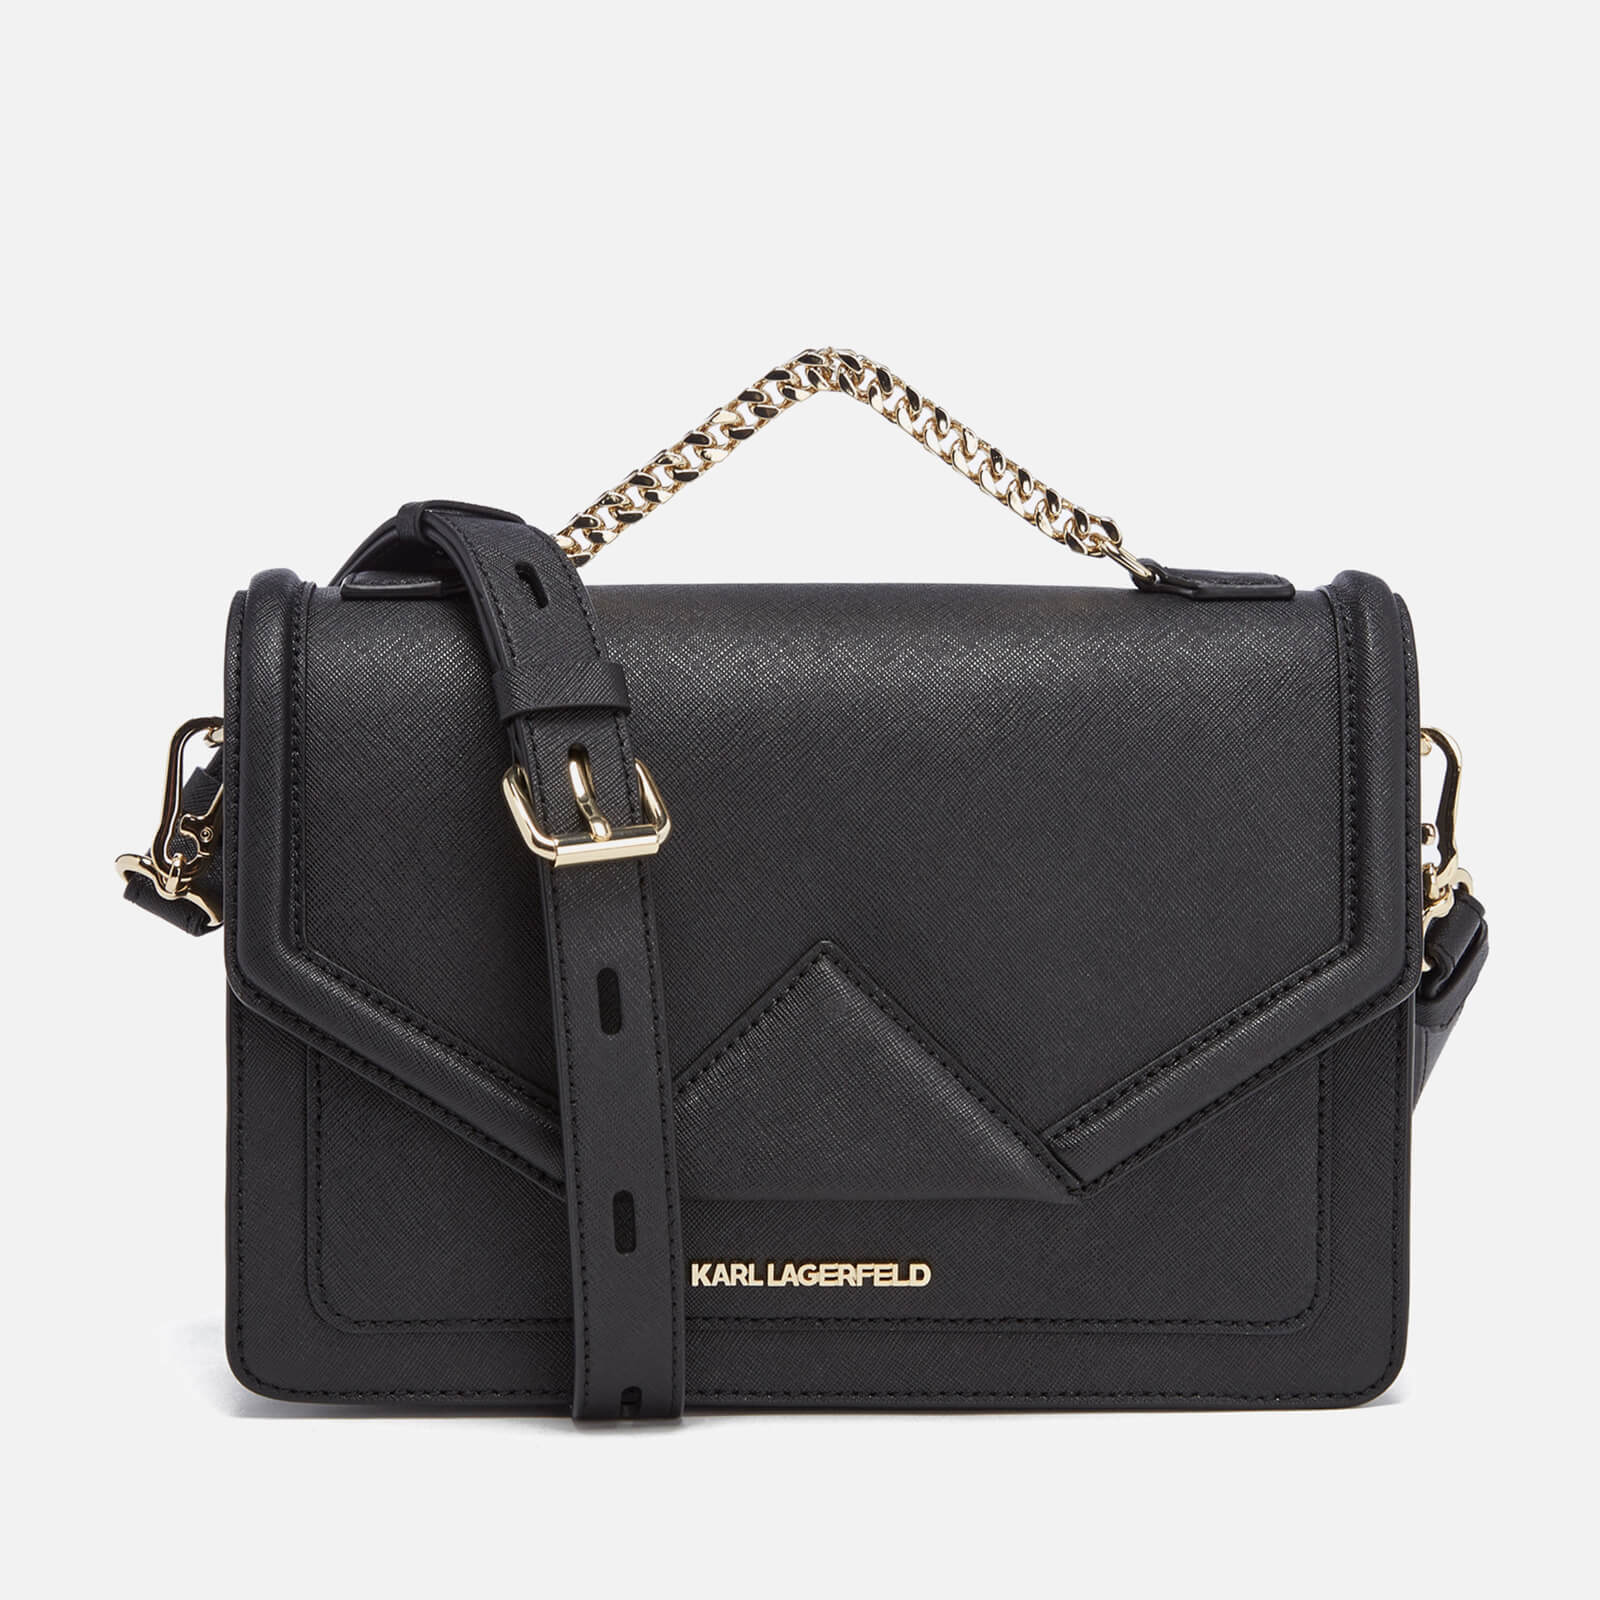 71dda4784 Karl Lagerfeld Women's K/Klassik Shoulder Bag - Black - Free UK Delivery  over £50